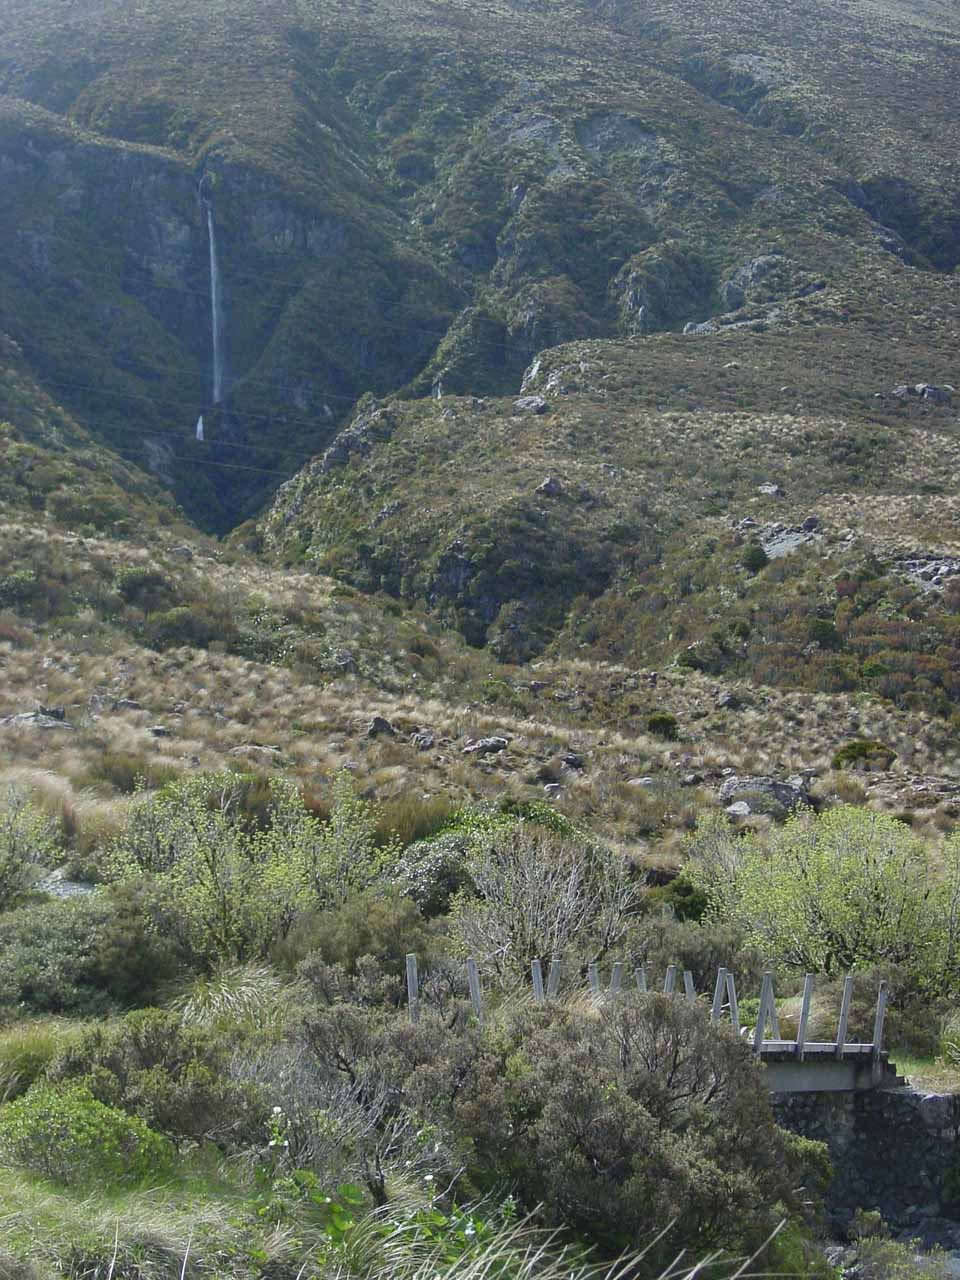 Contextual view of Twin Creek Falls as we continued driving further south along SH73